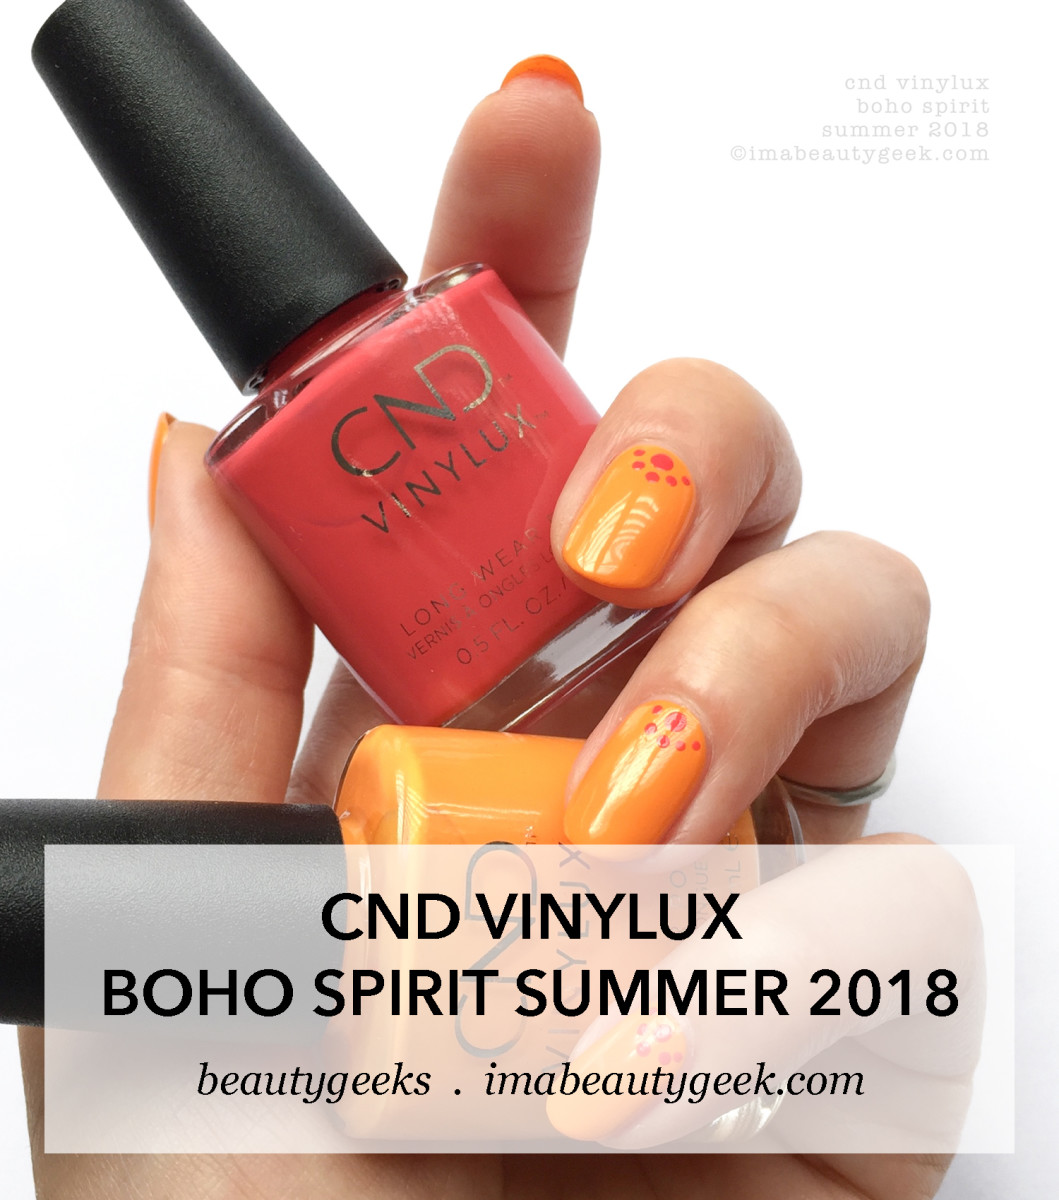 CND Vinylux Boho Spirit Collection Summer 2018-IMABEAUTYGEEK.COM